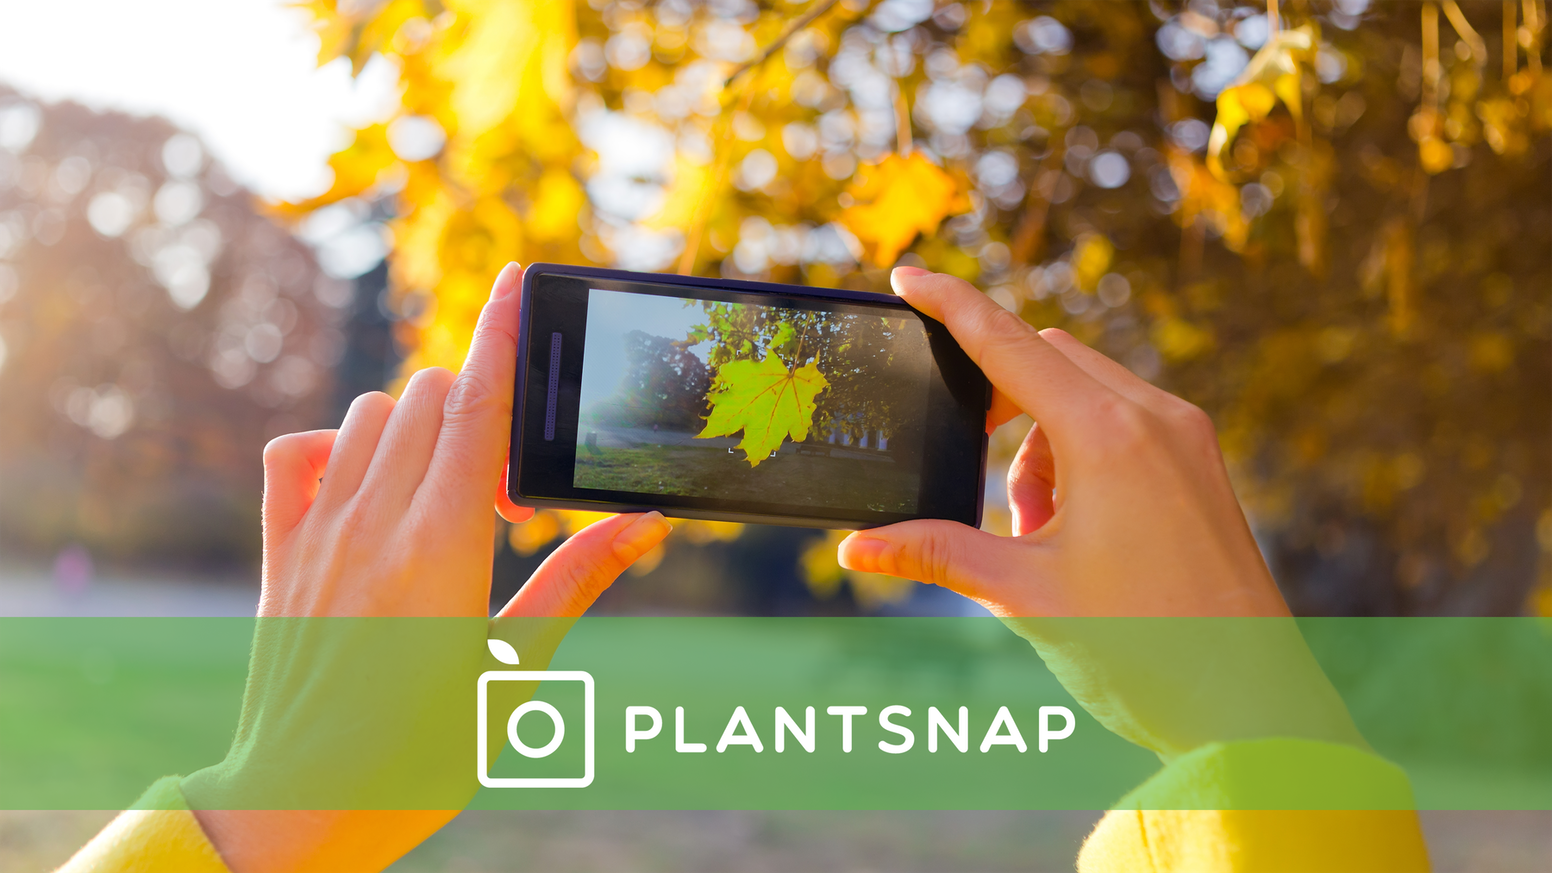 Join Us In Creating The PlantSnap Mobile App Snap A Photo Of Plant